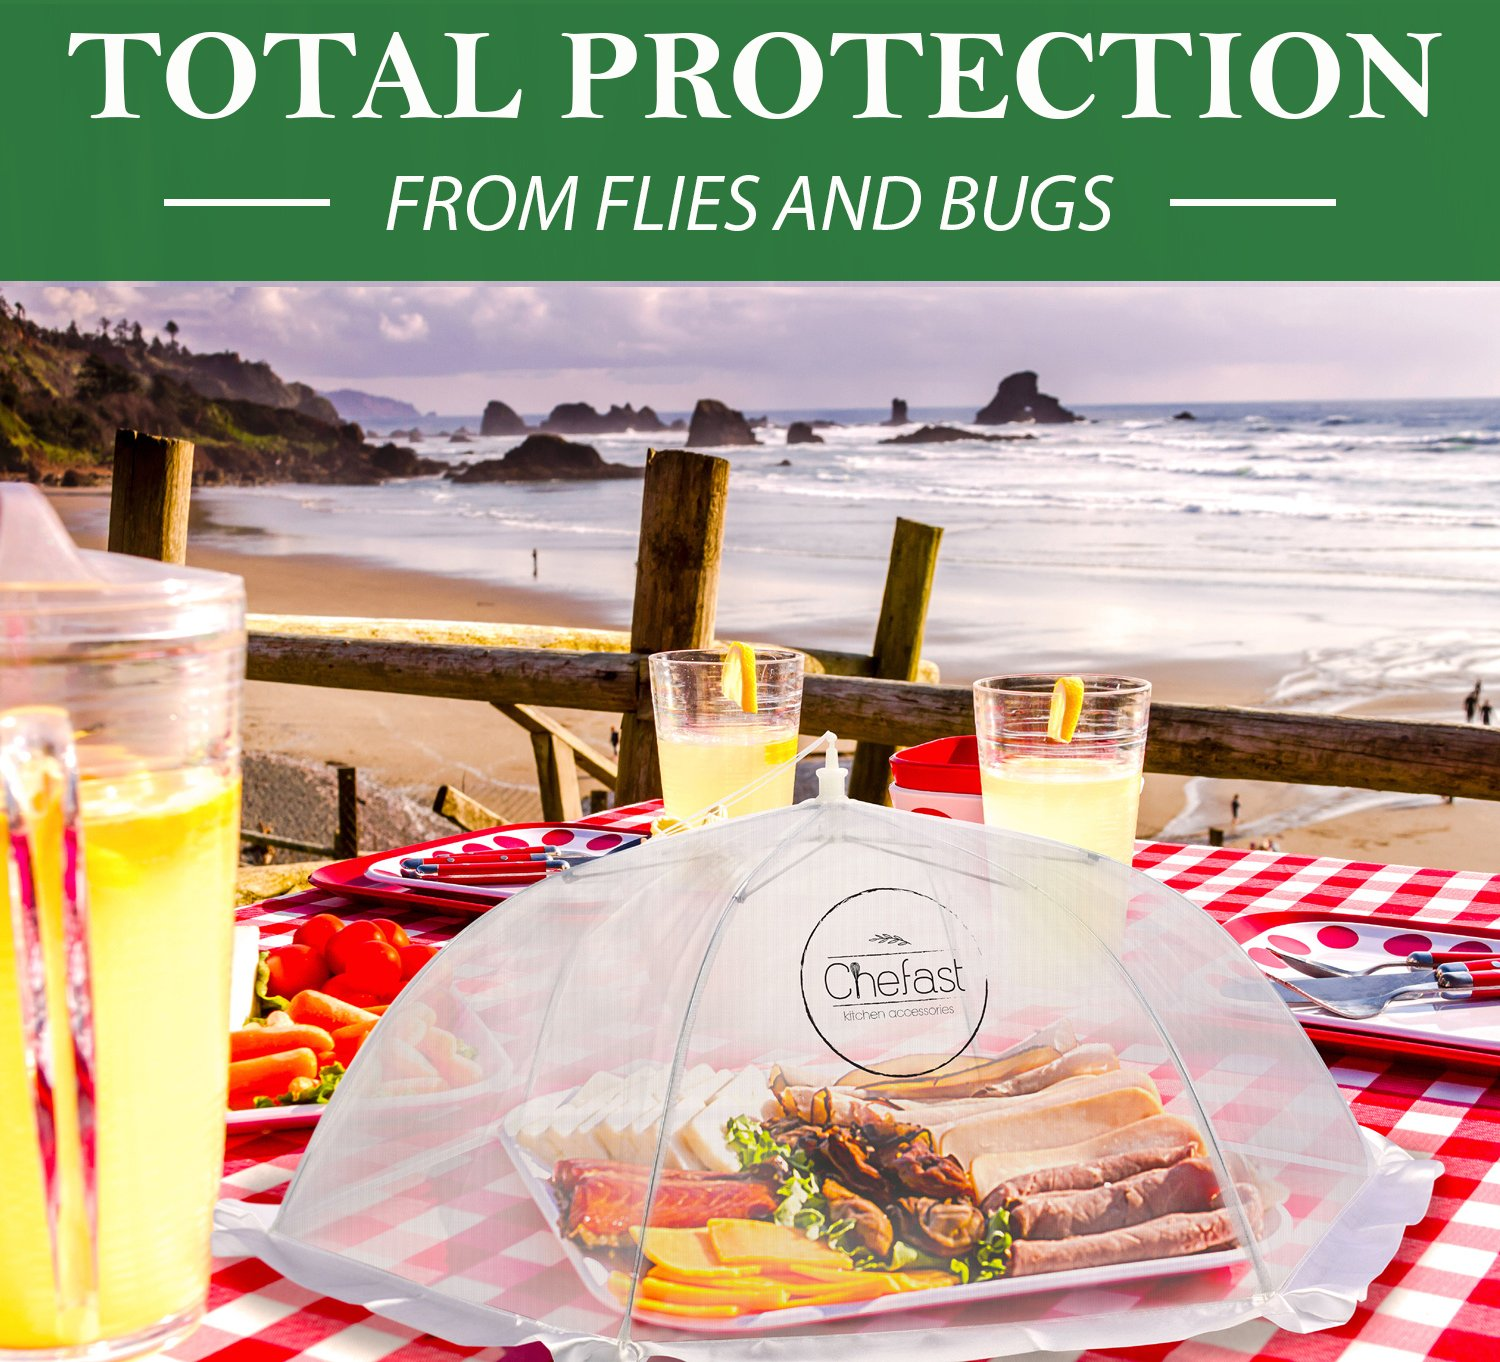 Chefast Food Cover Tents (5 Pack) - Combo Set of Pop Up Mesh Covers in 3 Sizes and a Reusable Carry Bag - Umbrella Screens to Protect Your Food and Fruit from Flies and Bugs at Picnics, BBQ and More by Chefast (Image #6)